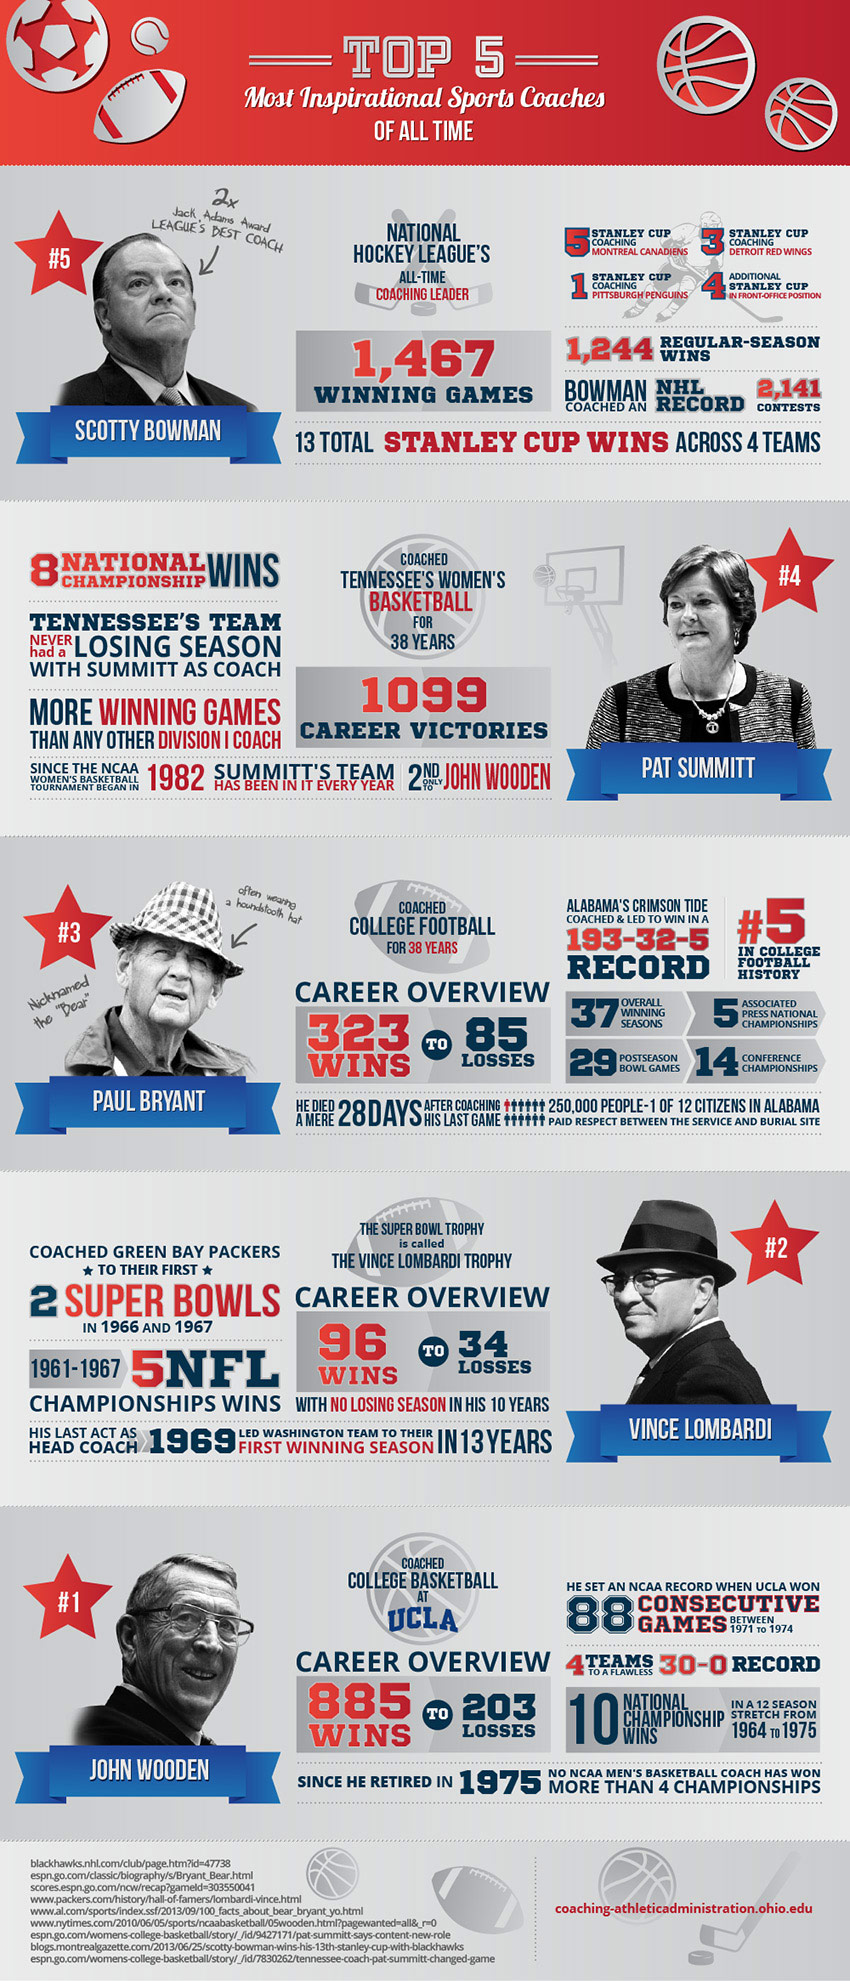 Top 5 most inspirational sports coaches of all time infographic